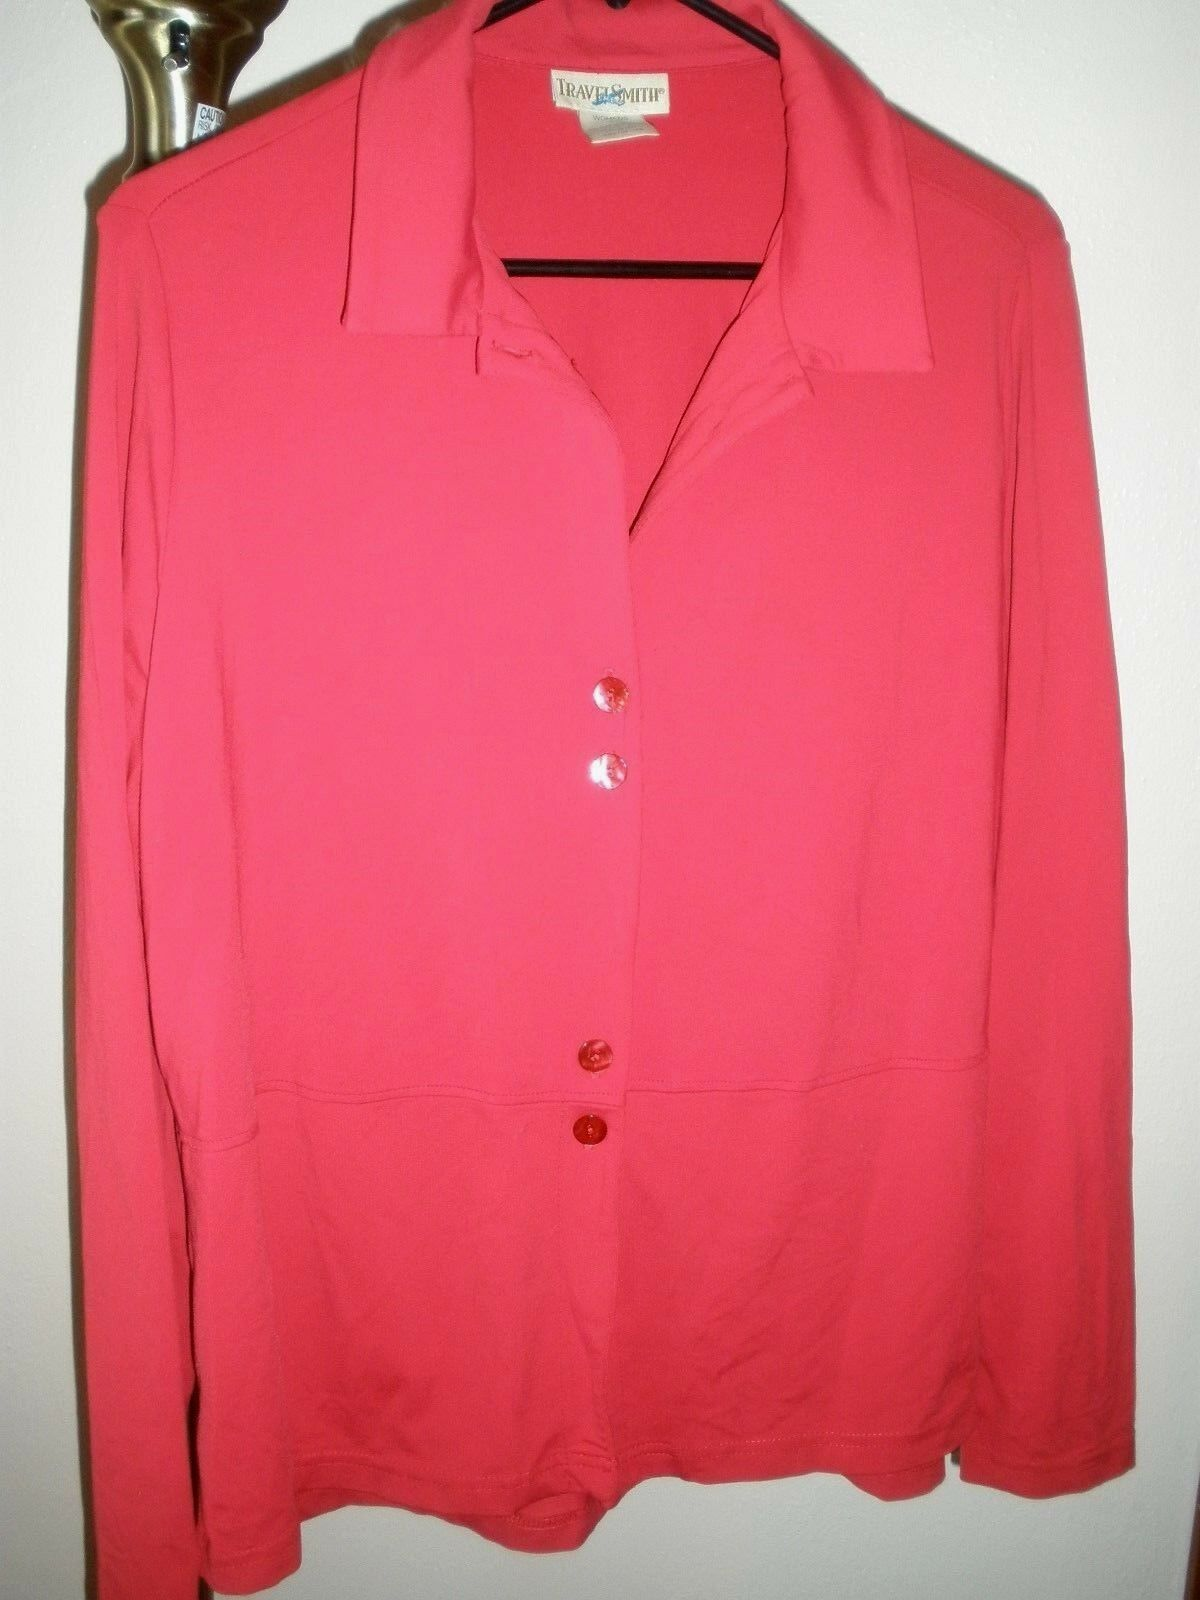 WOMEN'S RED STRETCHY TRAVELSMITH L S BUTTON-DOWN TRAVEL CASUAL SHIRT SZ LARGE